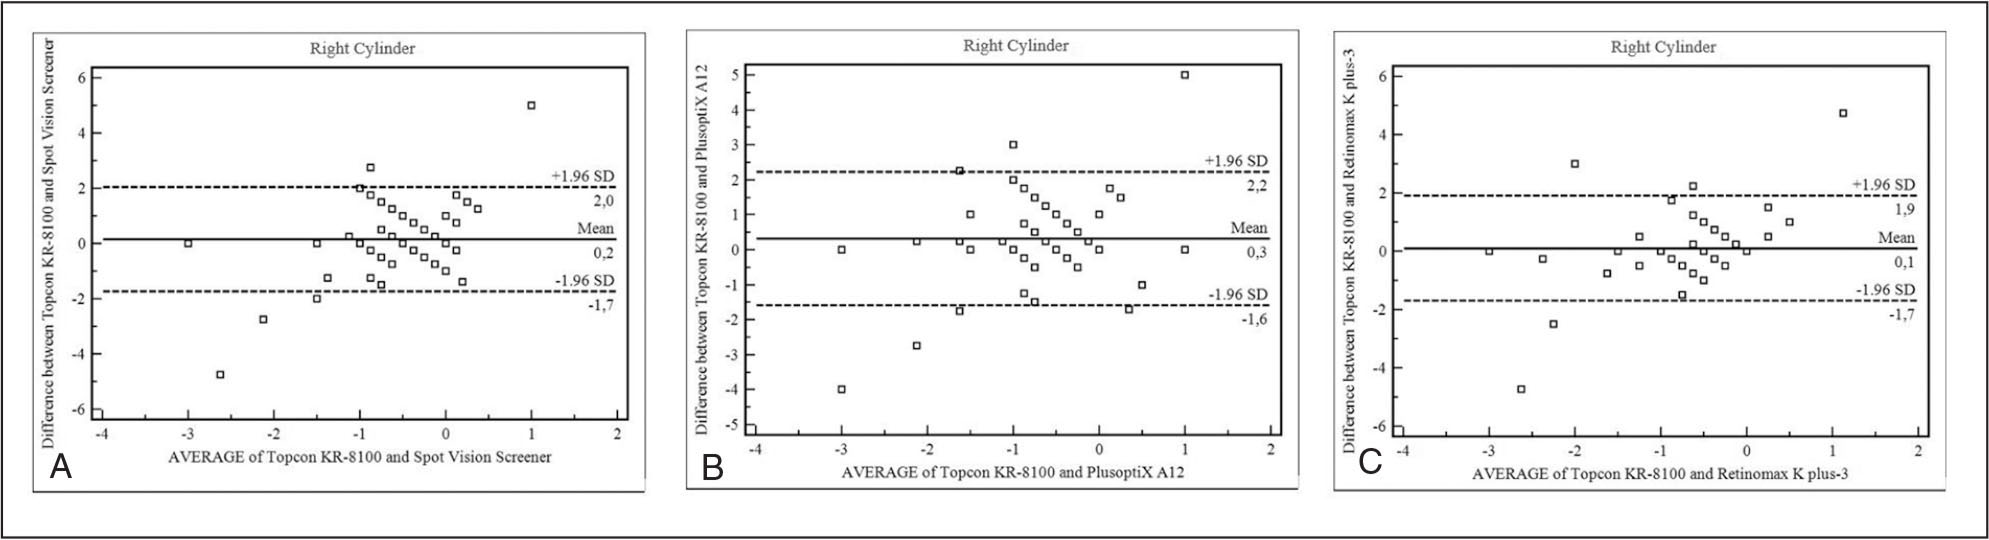 (A–C) Bland–Altman plots showing agreement between the devices for the right cylinder measurements.